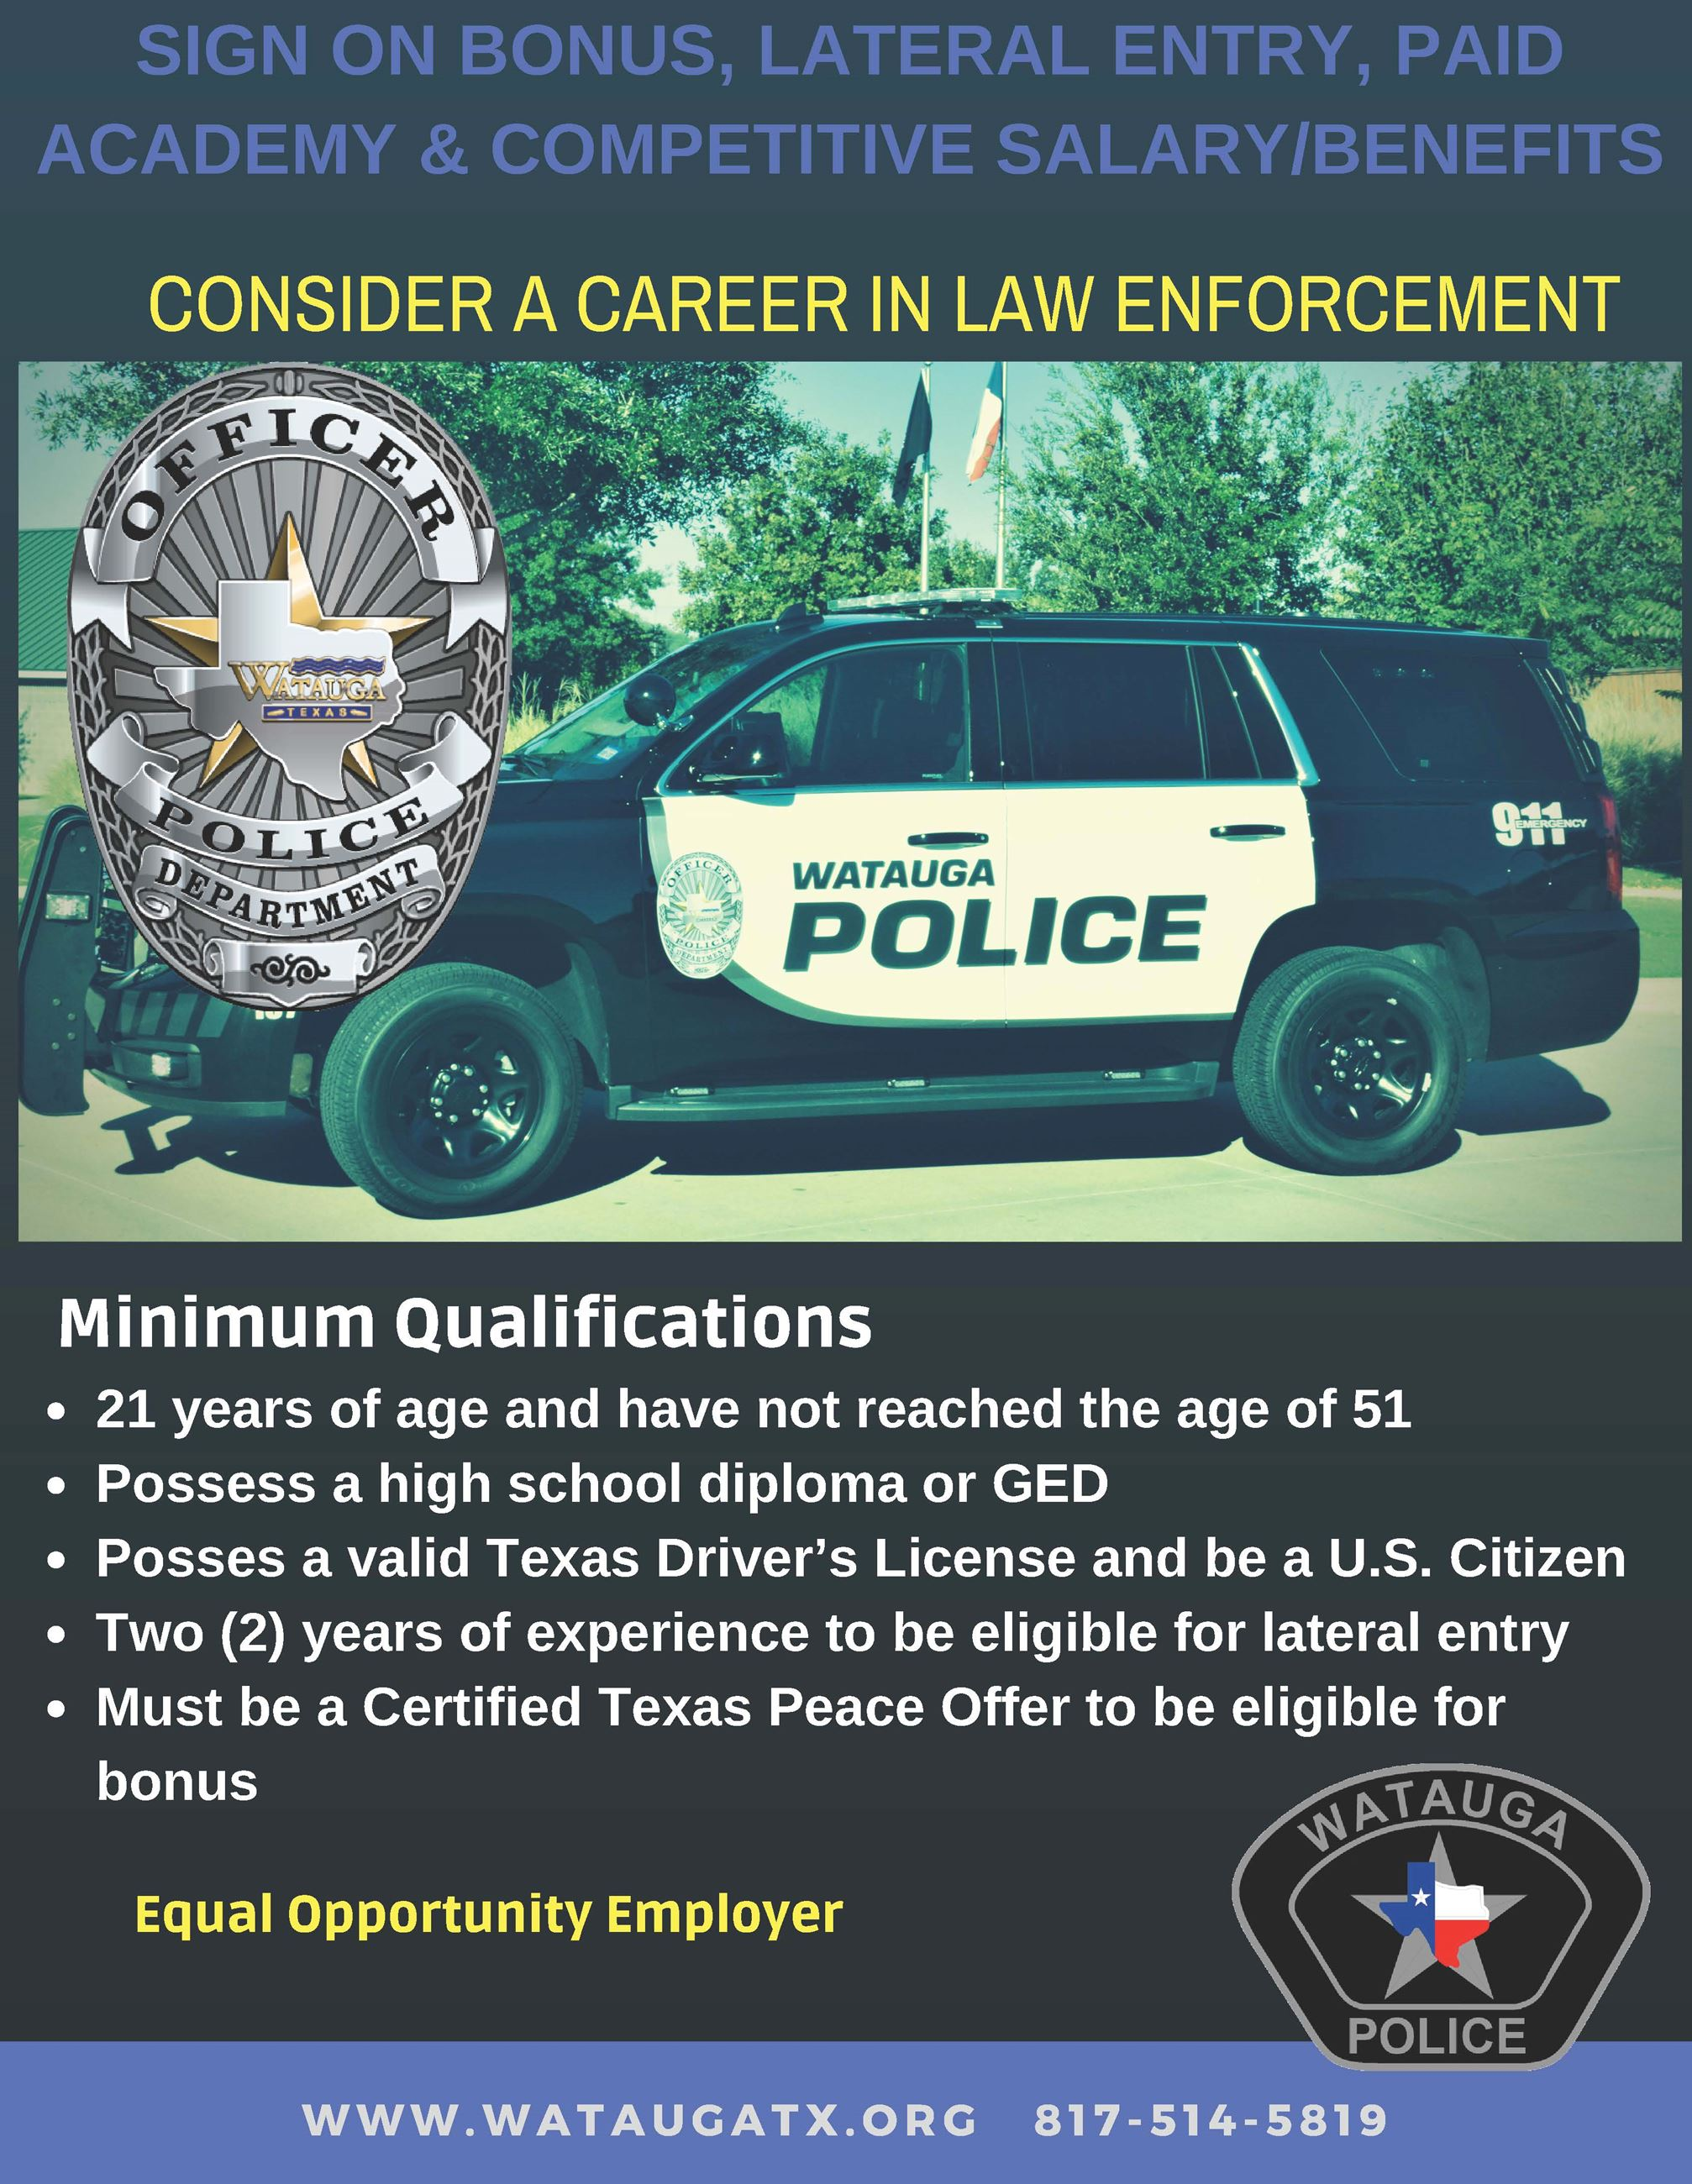 PD Recruitment Flyer 2018-19